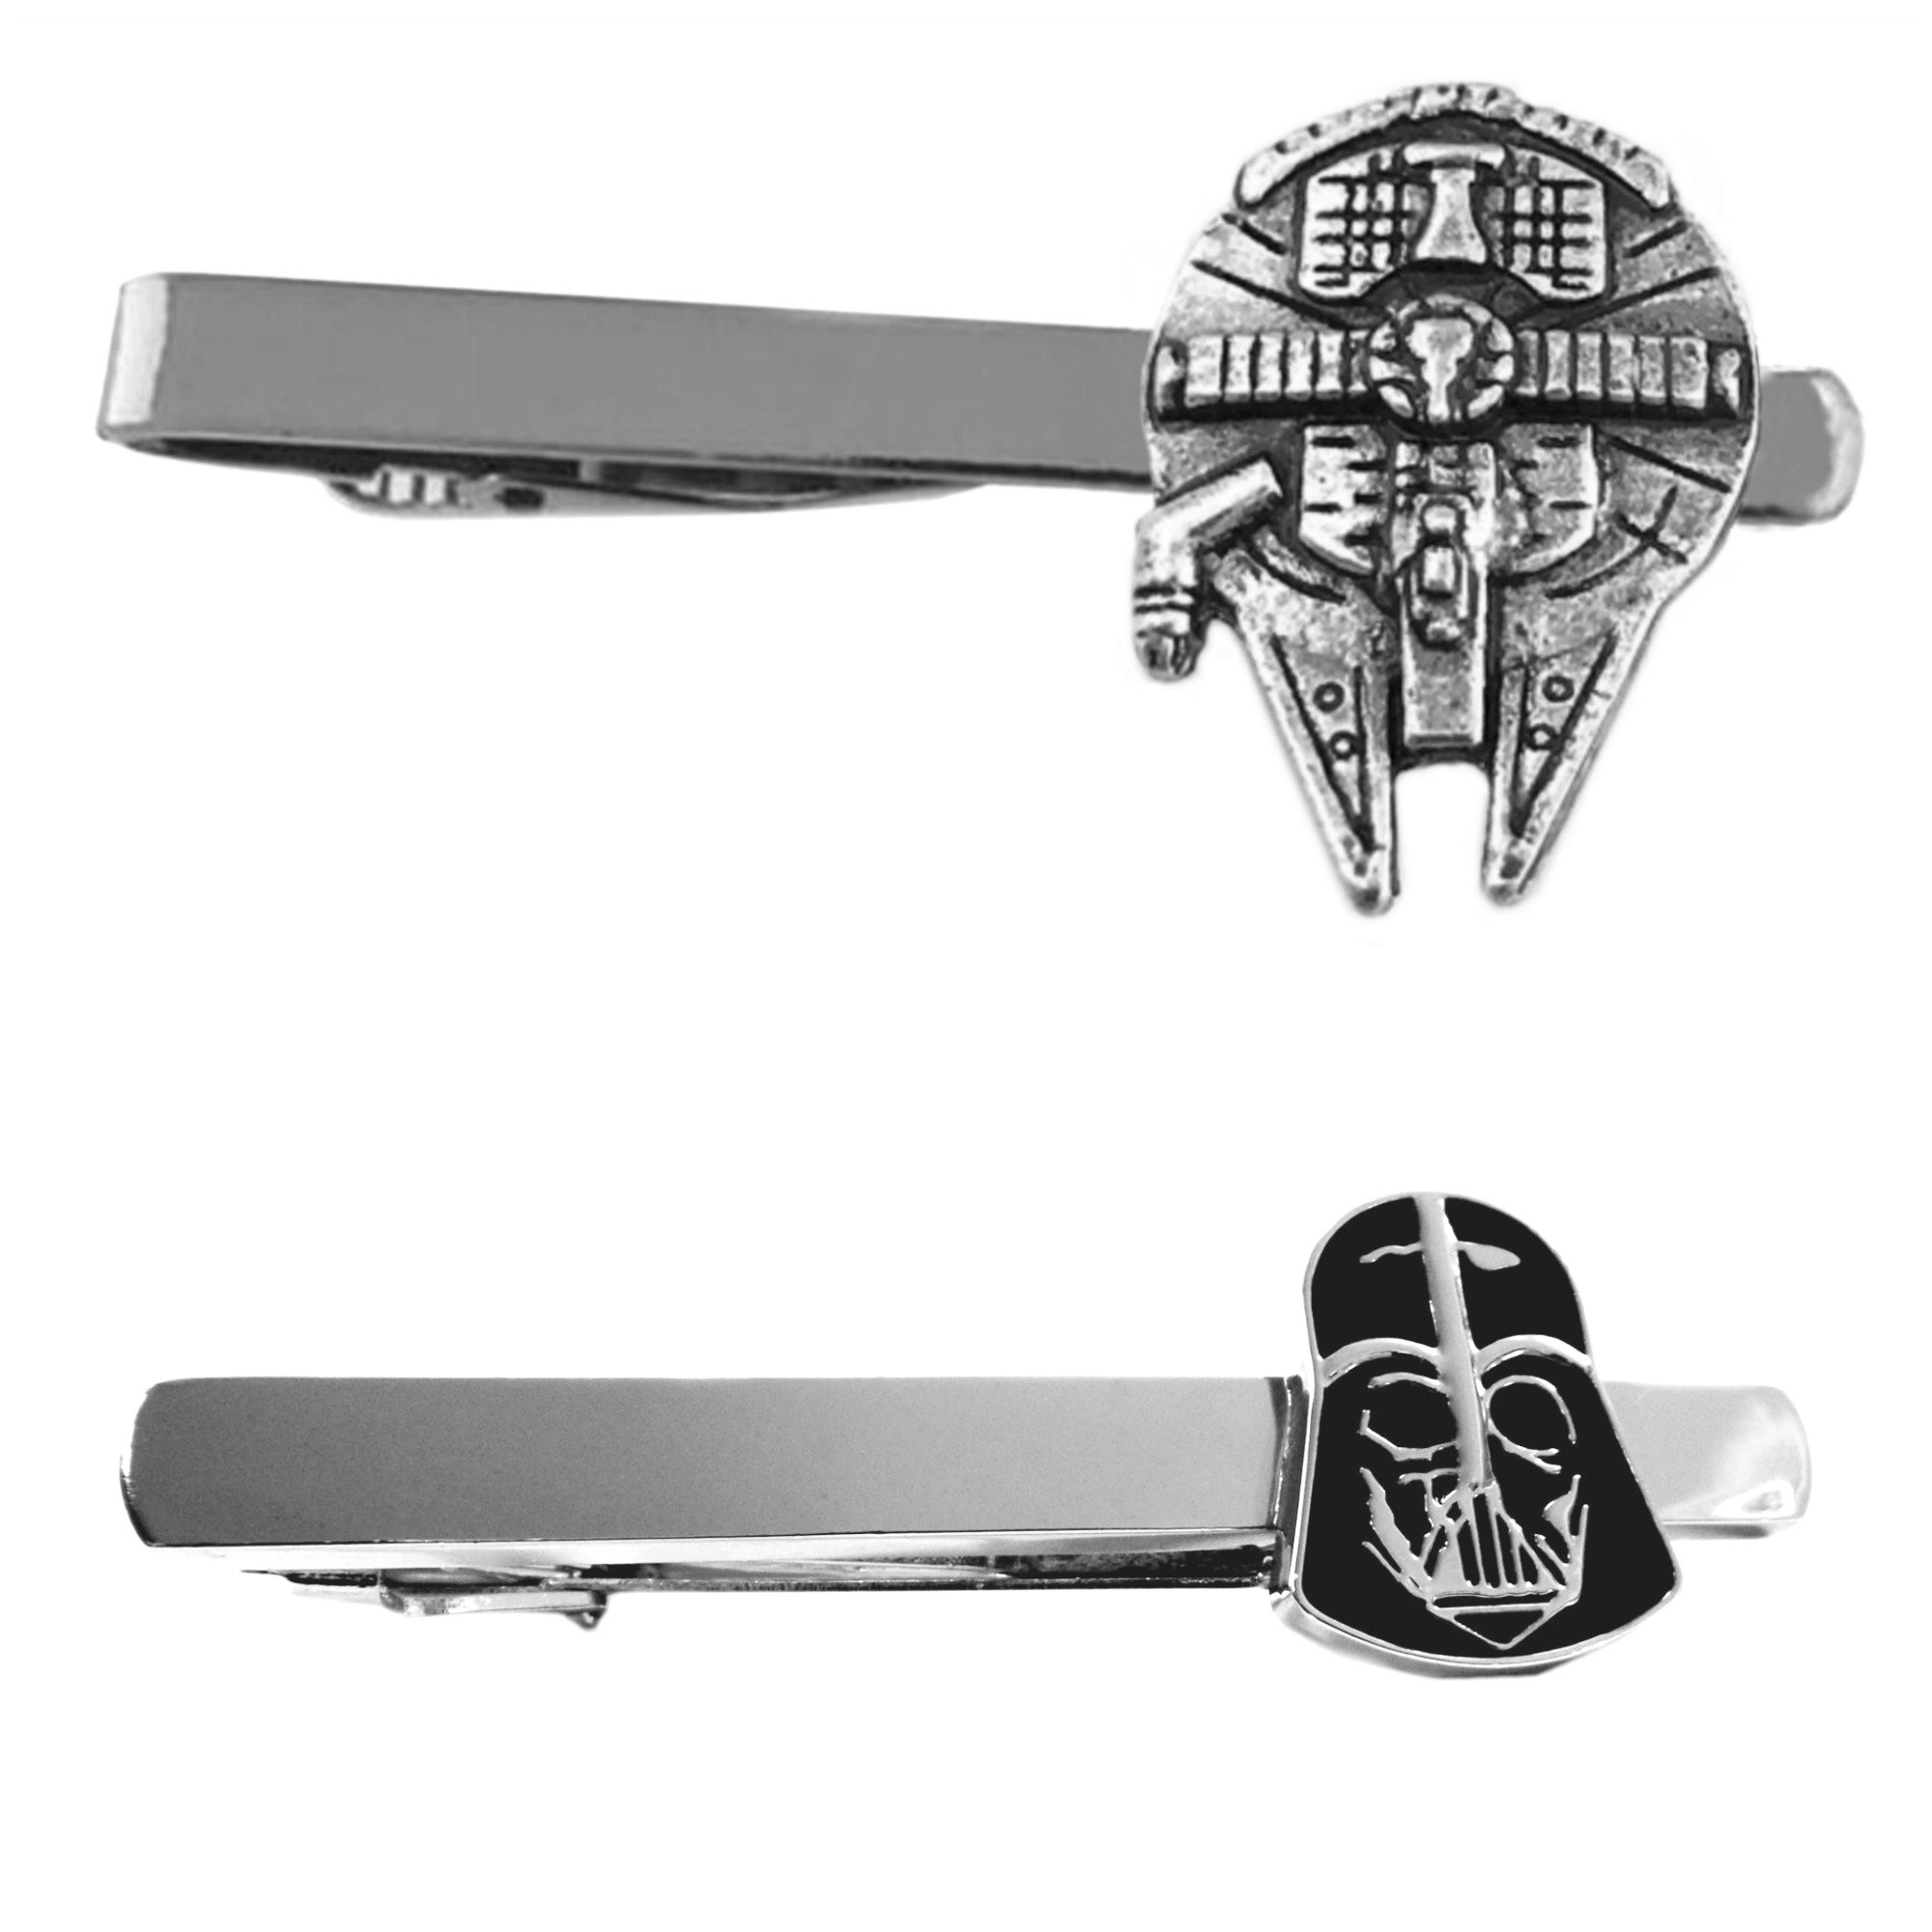 Outlander Star Wars - Millenium Falcon & Darth Vader - Tiebar Tie Clasp Set of 2 Wedding Superhero Logo w/Gift Box